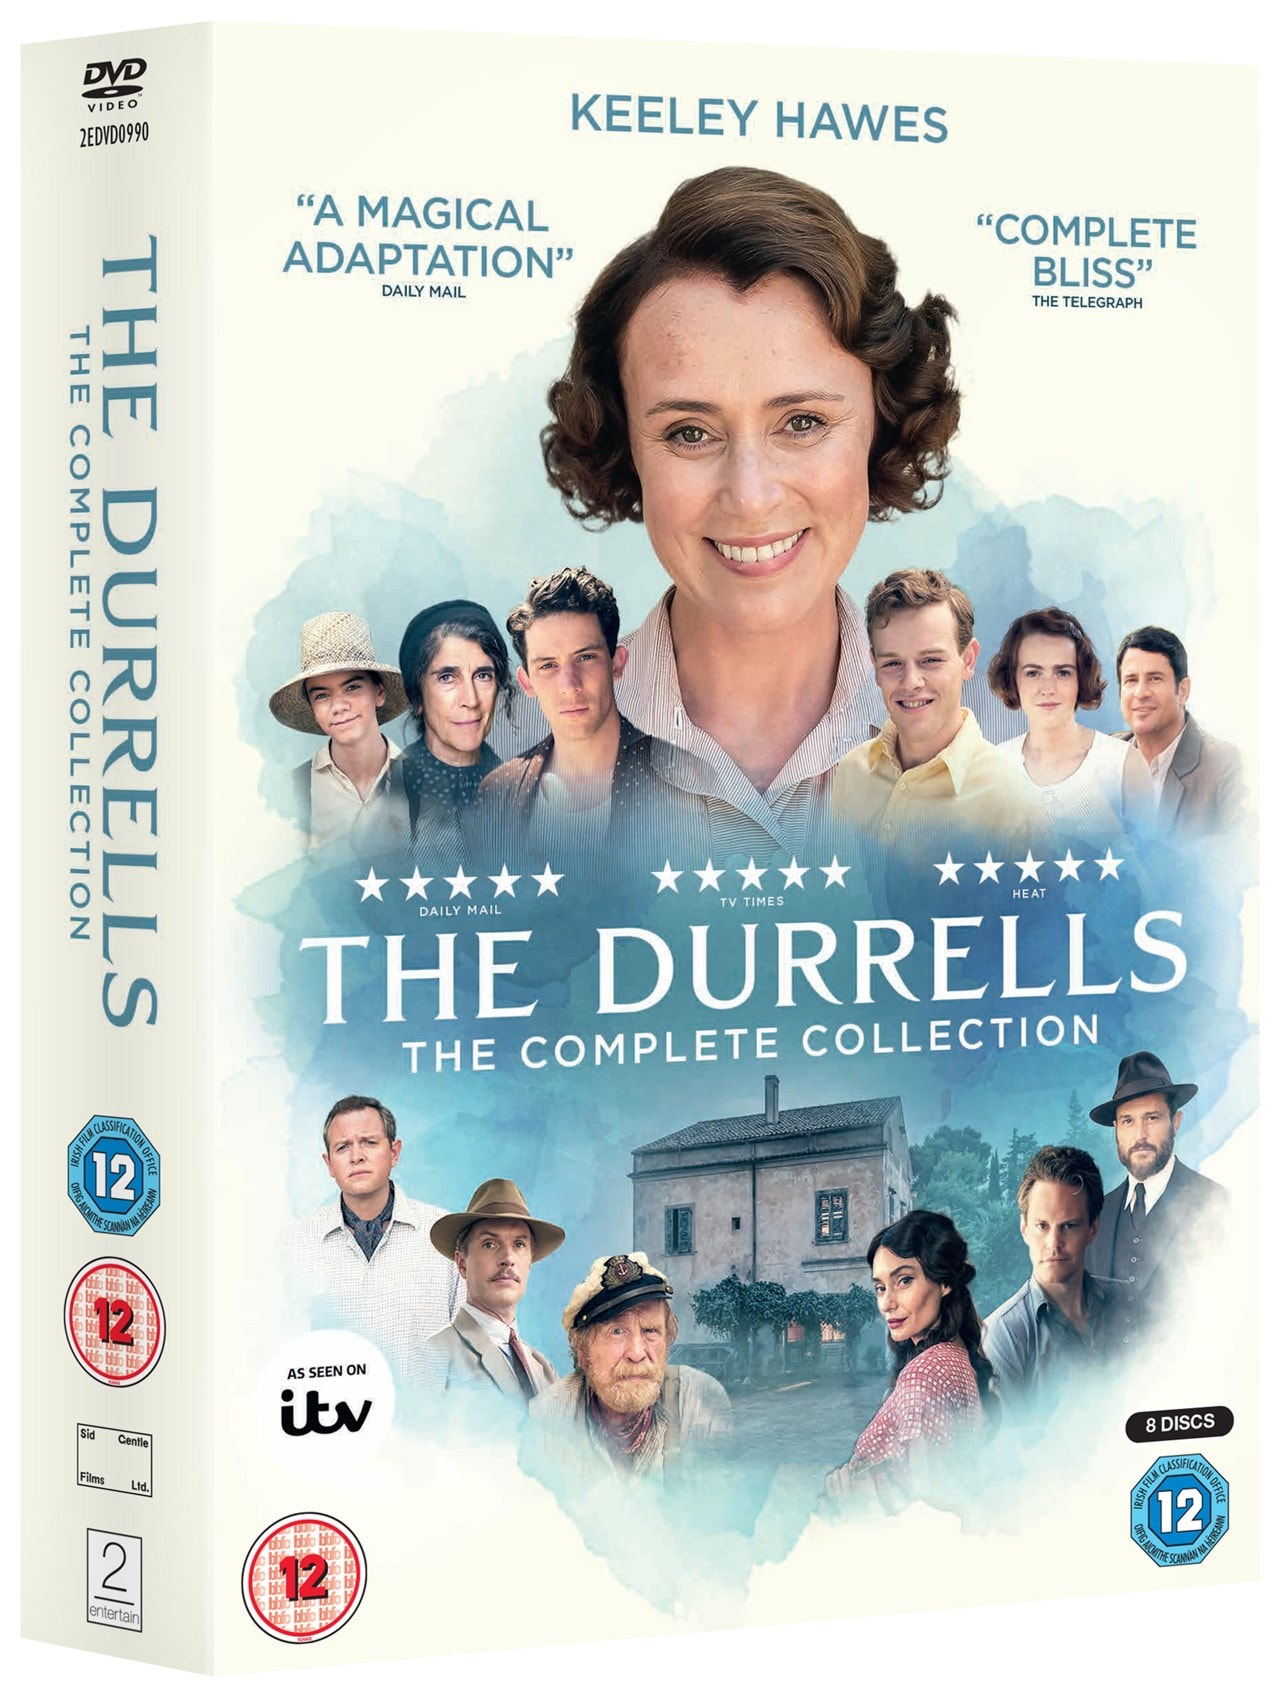 The Durrells: The Complete Collection - 2